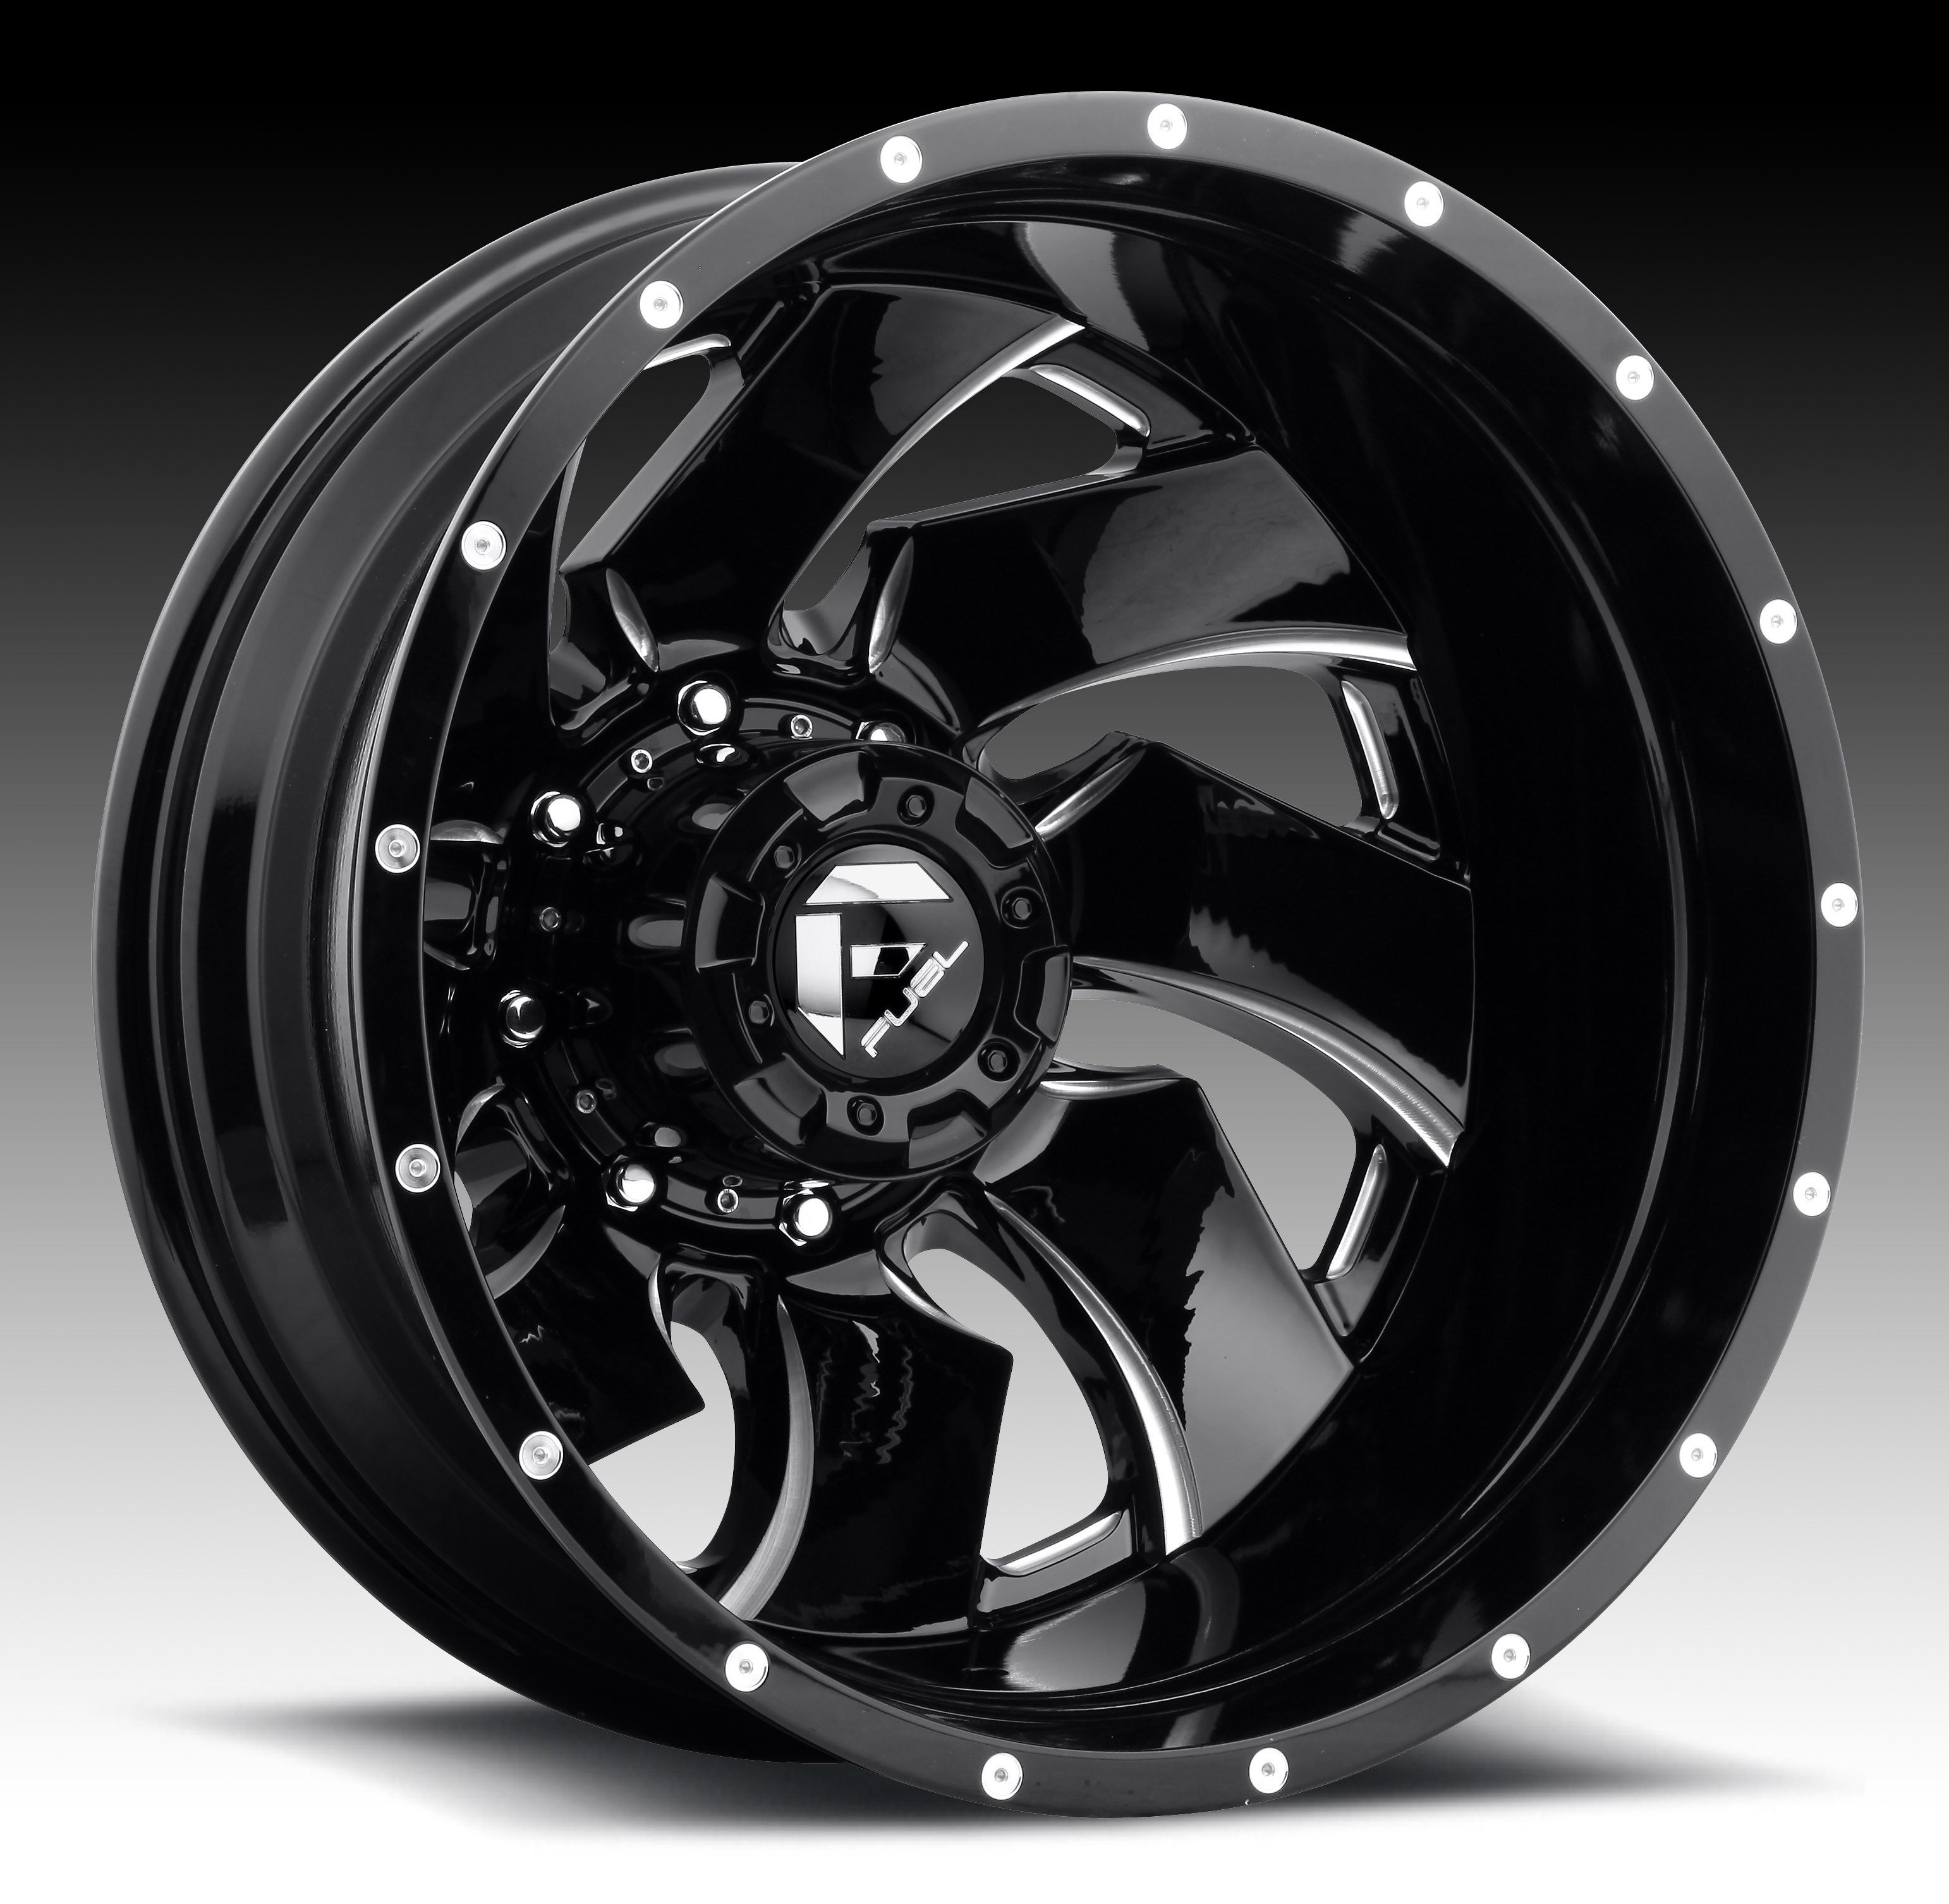 Buy Discount Tires And Low Price Wheels Online Pmctire